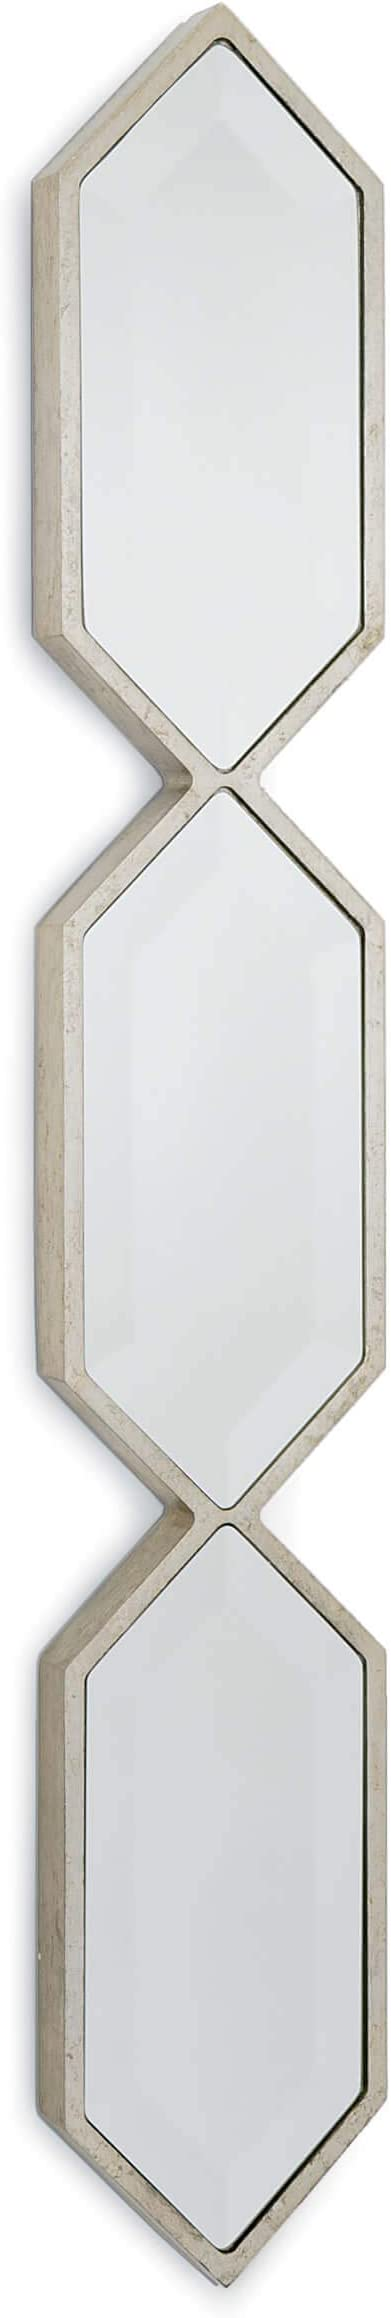 Amazon Com Regina Andrew Triple Diamond Classic Wall Panel Mirror In A Gold Leaf Finish Color Standing 42 75 Inches Tall And 6 5 Inches Wide For An Entryway Living Room Or Bedroom Home